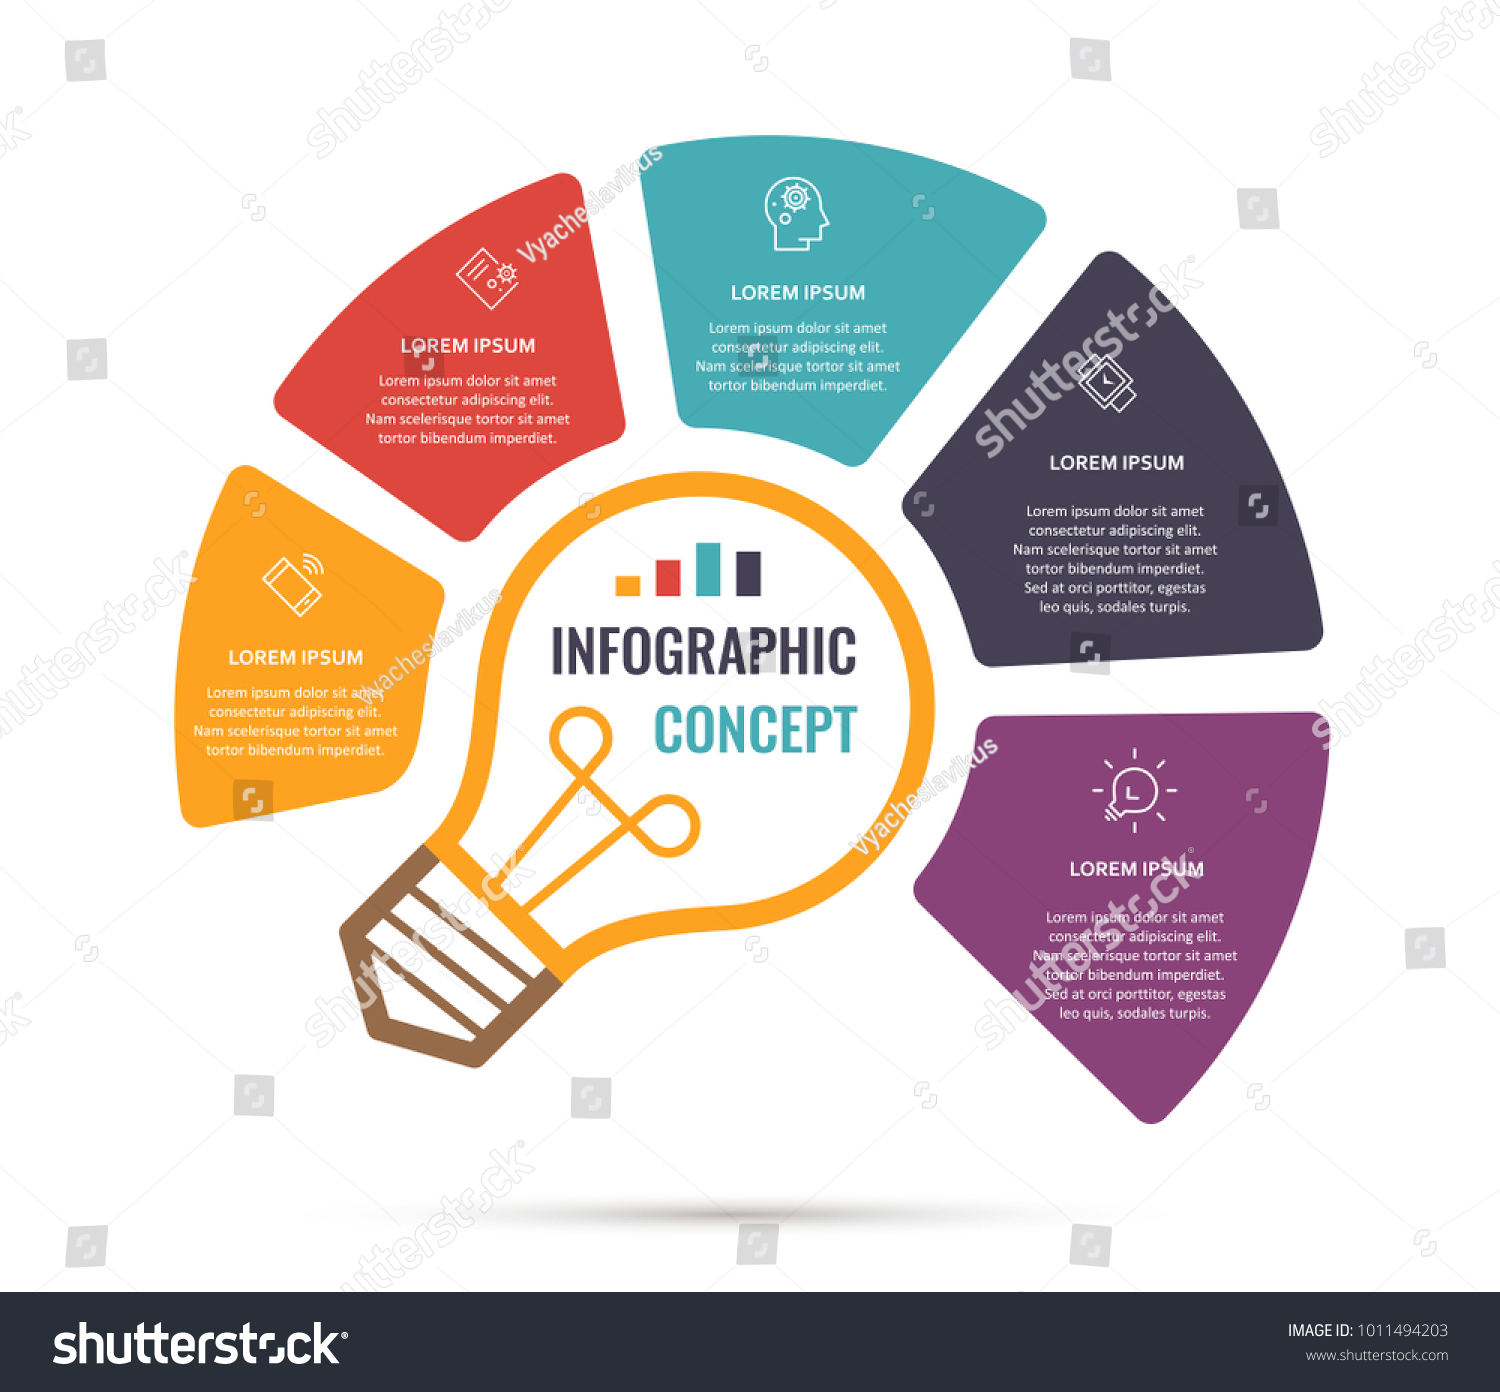 Vector Idea Light Bulb Circle Infographic Stock Royalty Free Partslightbulbdiagram Template For Graphs Charts Diagrams Business Concept